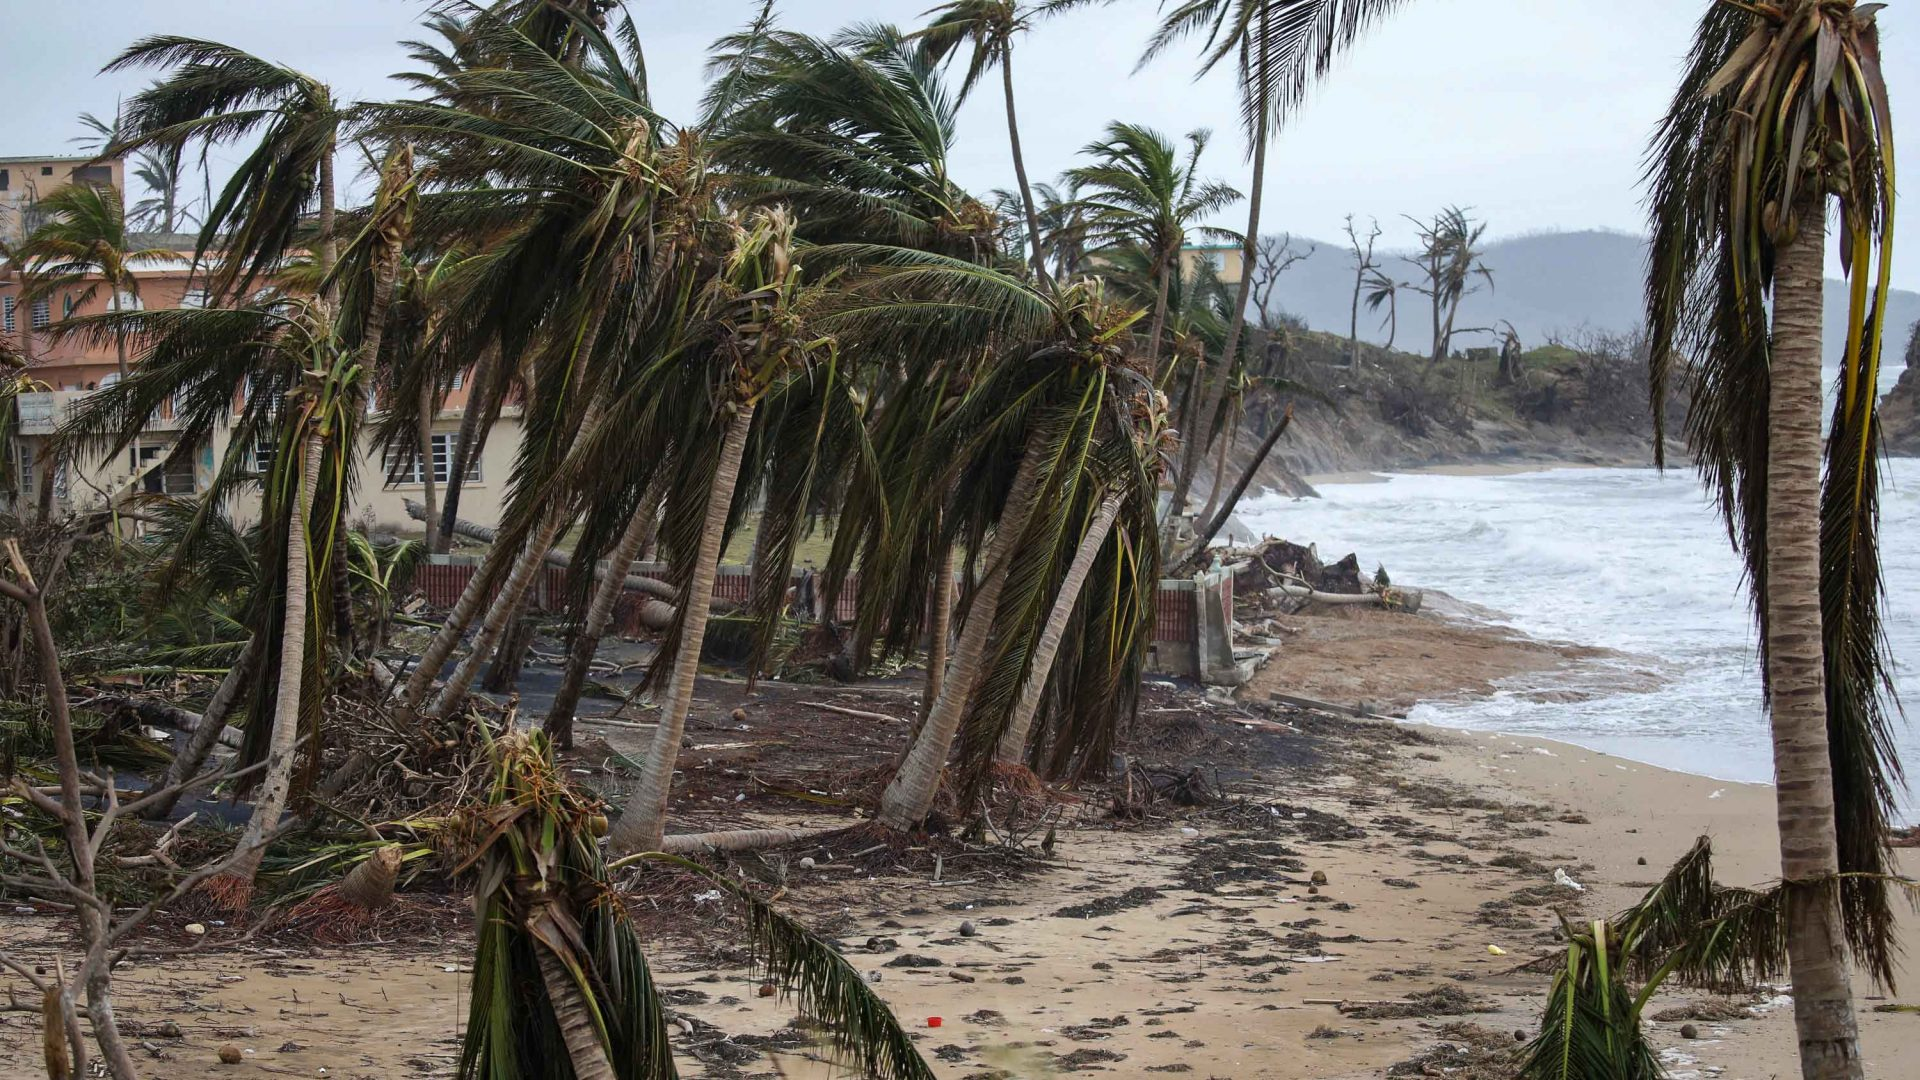 Hurricane havoc: Why you shouldn't cancel your Caribbean trip just yet